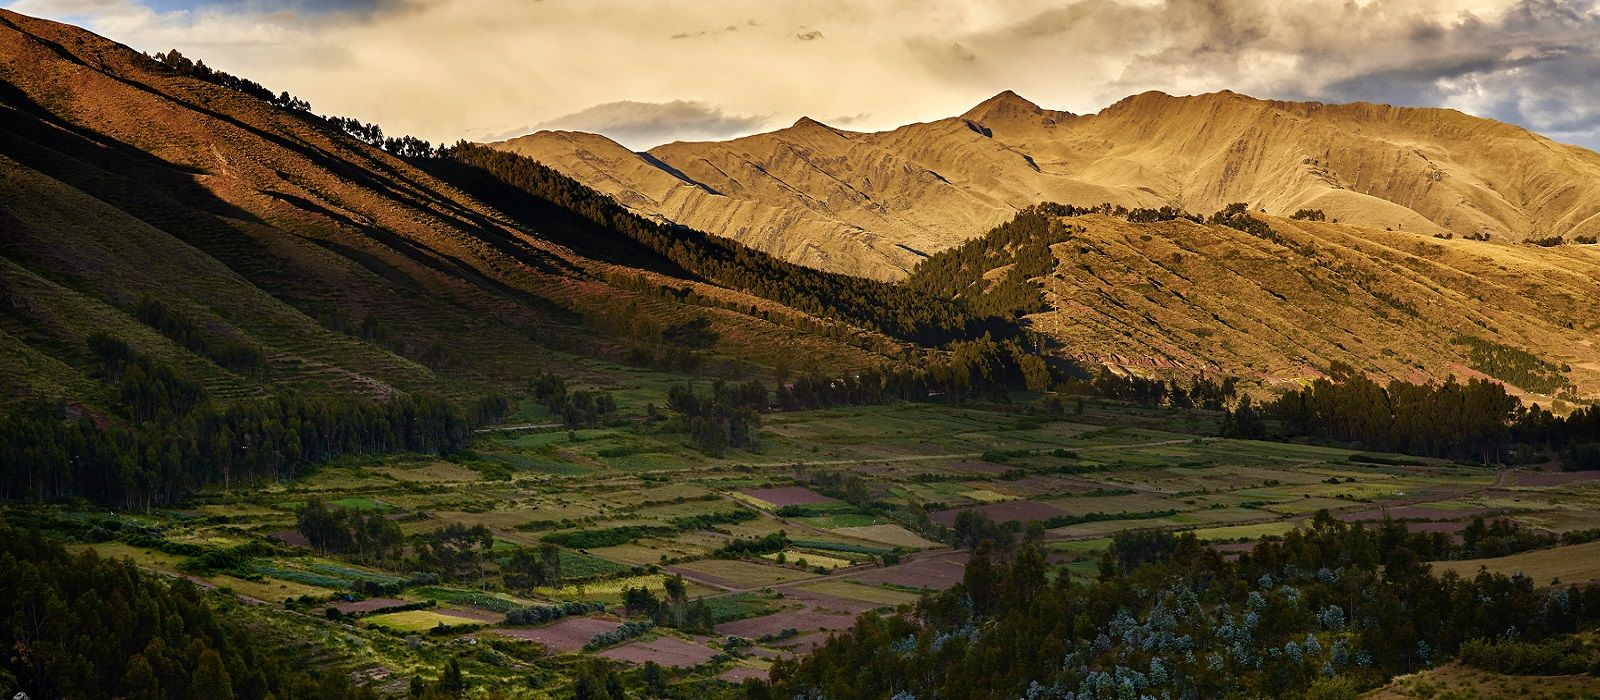 Destination Sacred Valley Peru